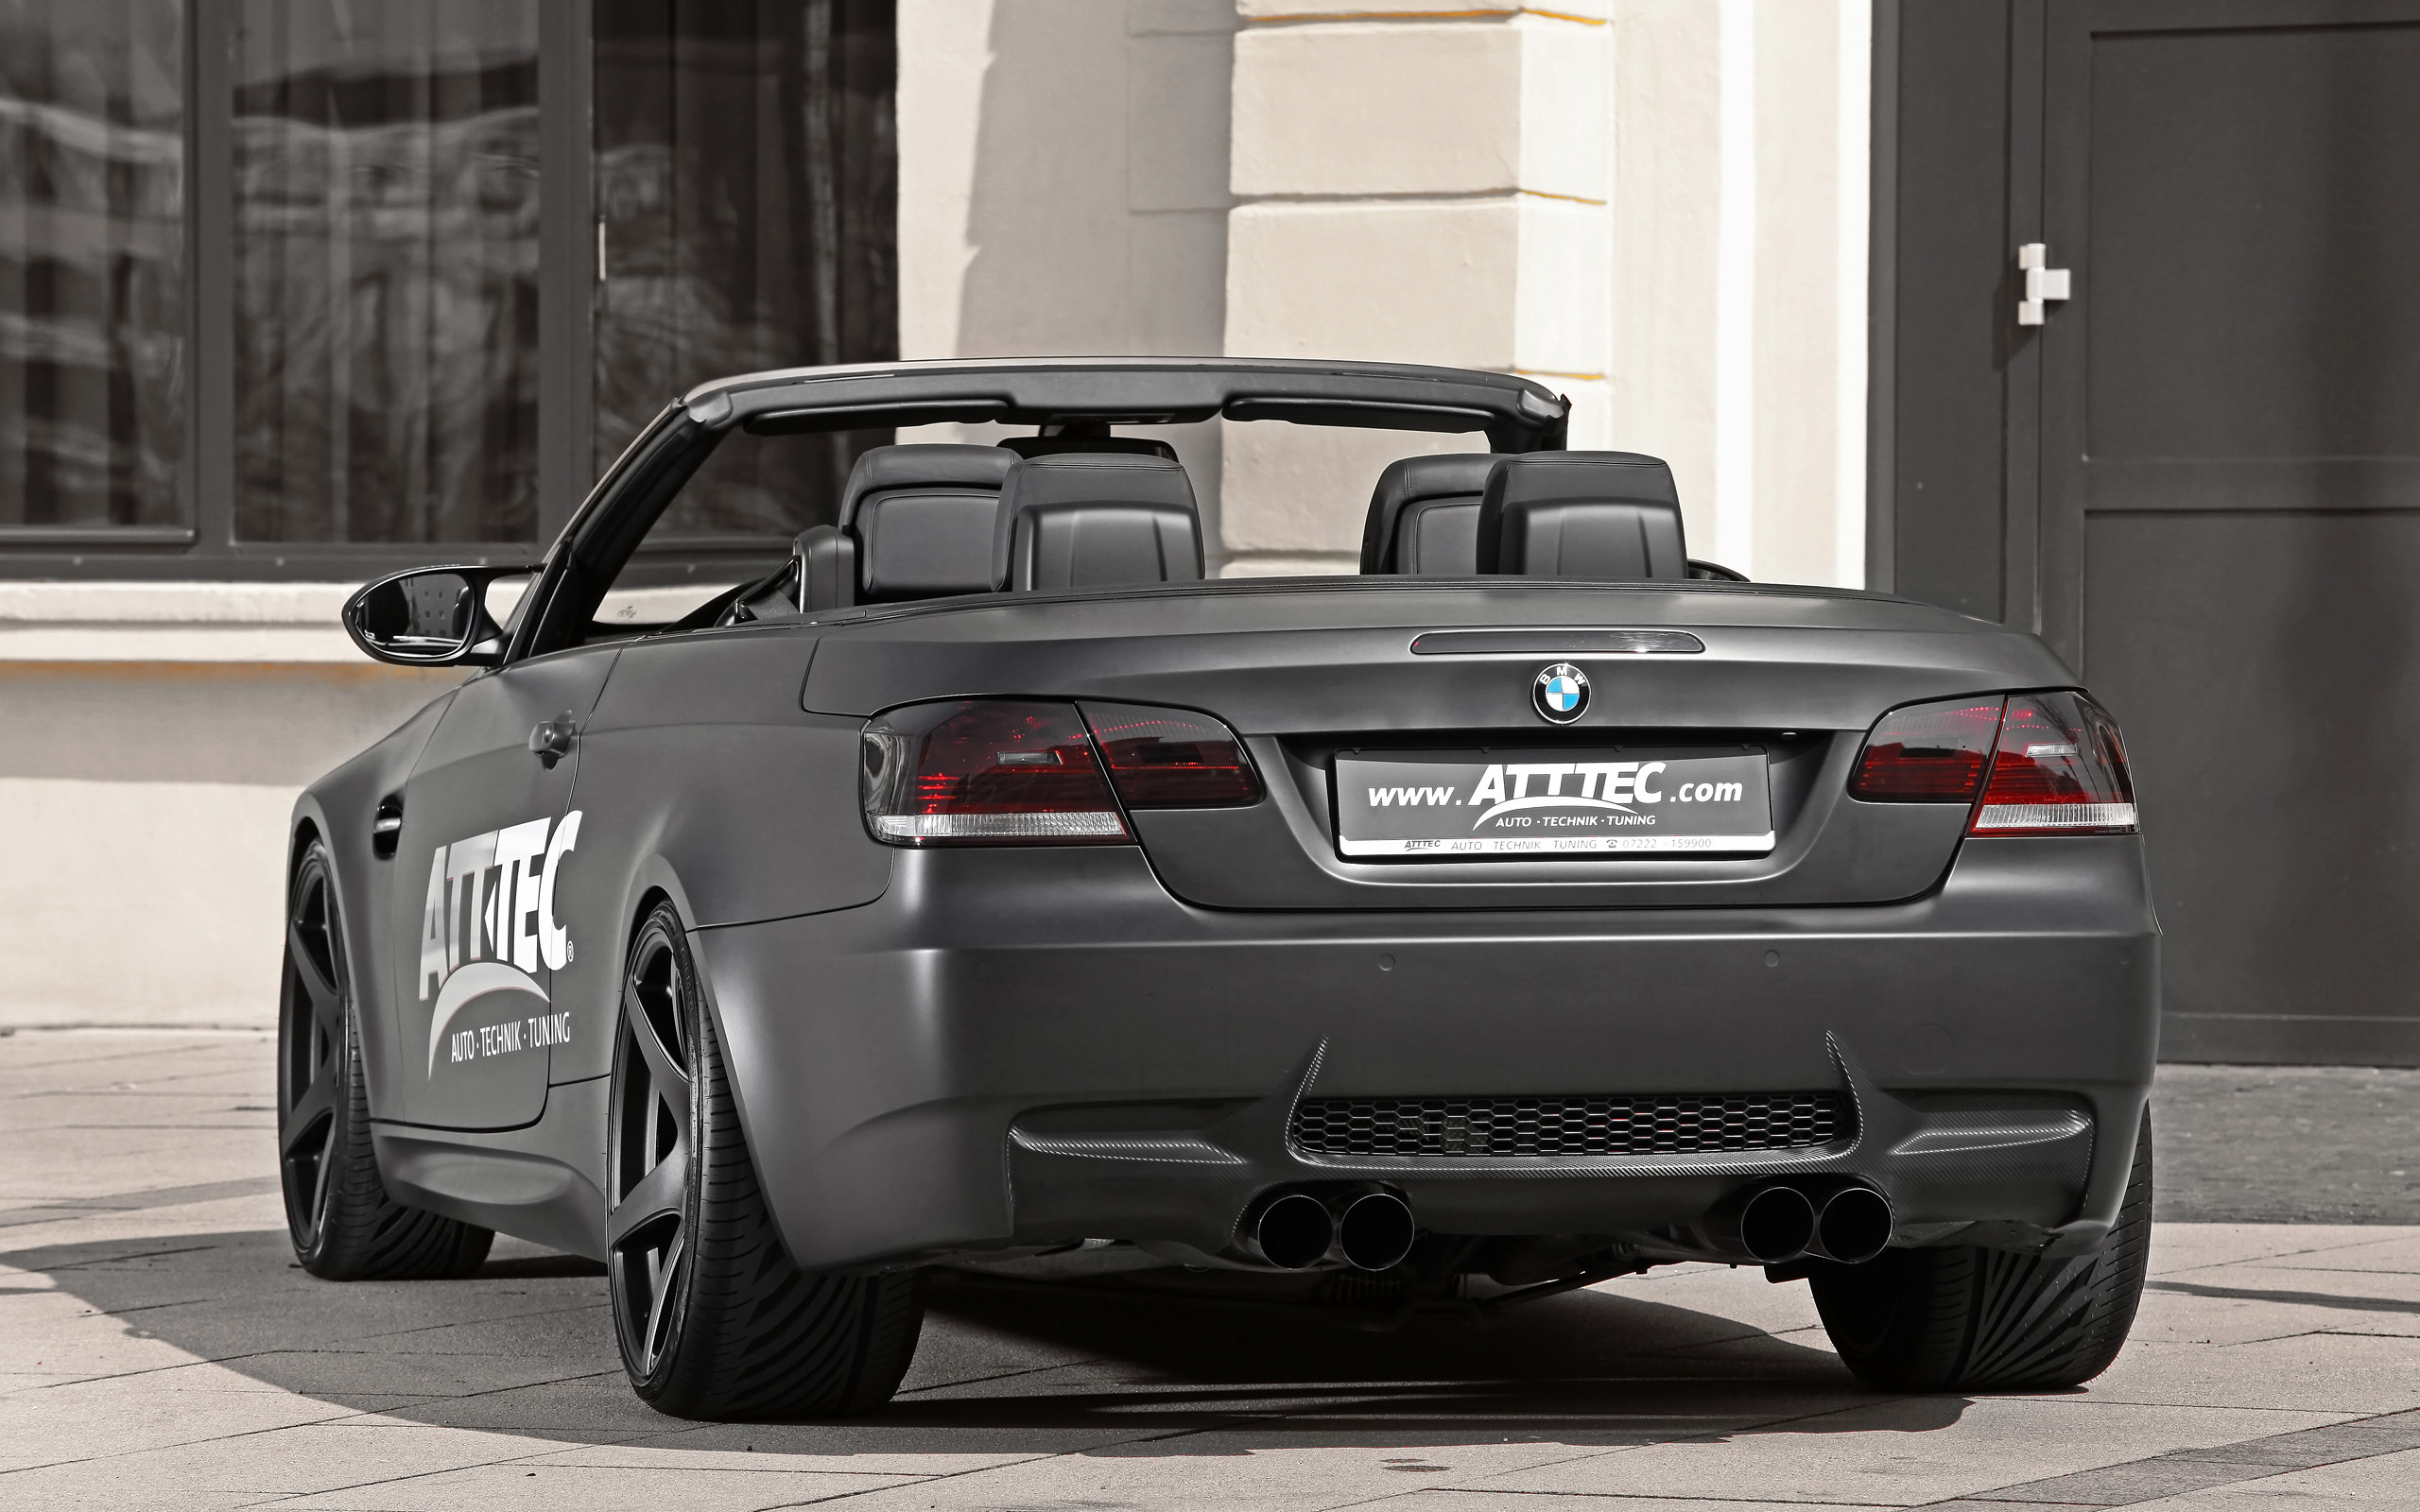 2012 ATT-TEC BMW M3 Convertible tuning m-3 h wallpaper | 2560x1600